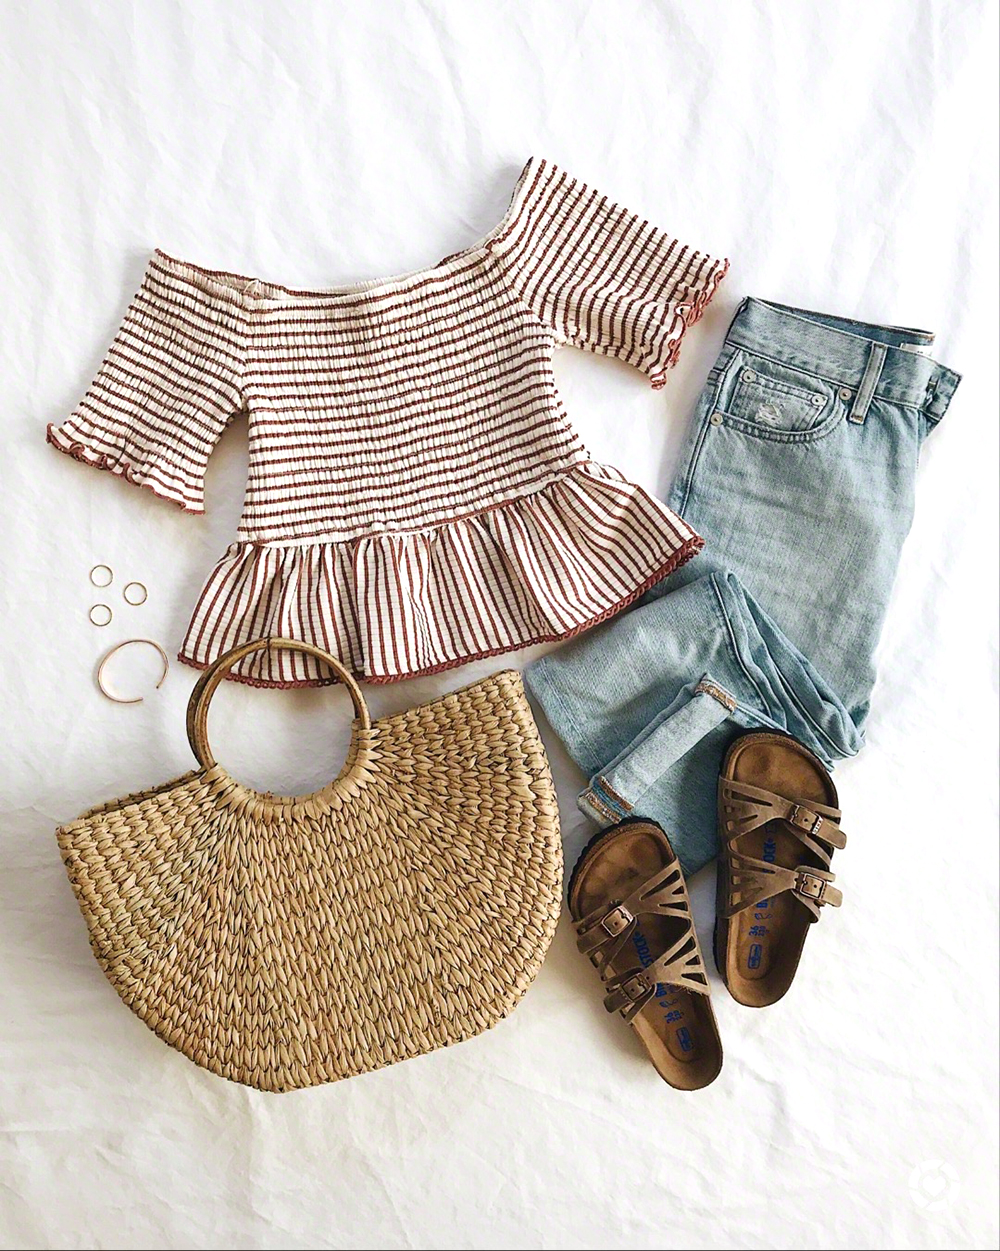 livvyland-blog-olivia-watson-flat-lay-summer-outfit-idea-inspiration-birkenstocks-granada-sandals-half-moon-straw-bag-outfit